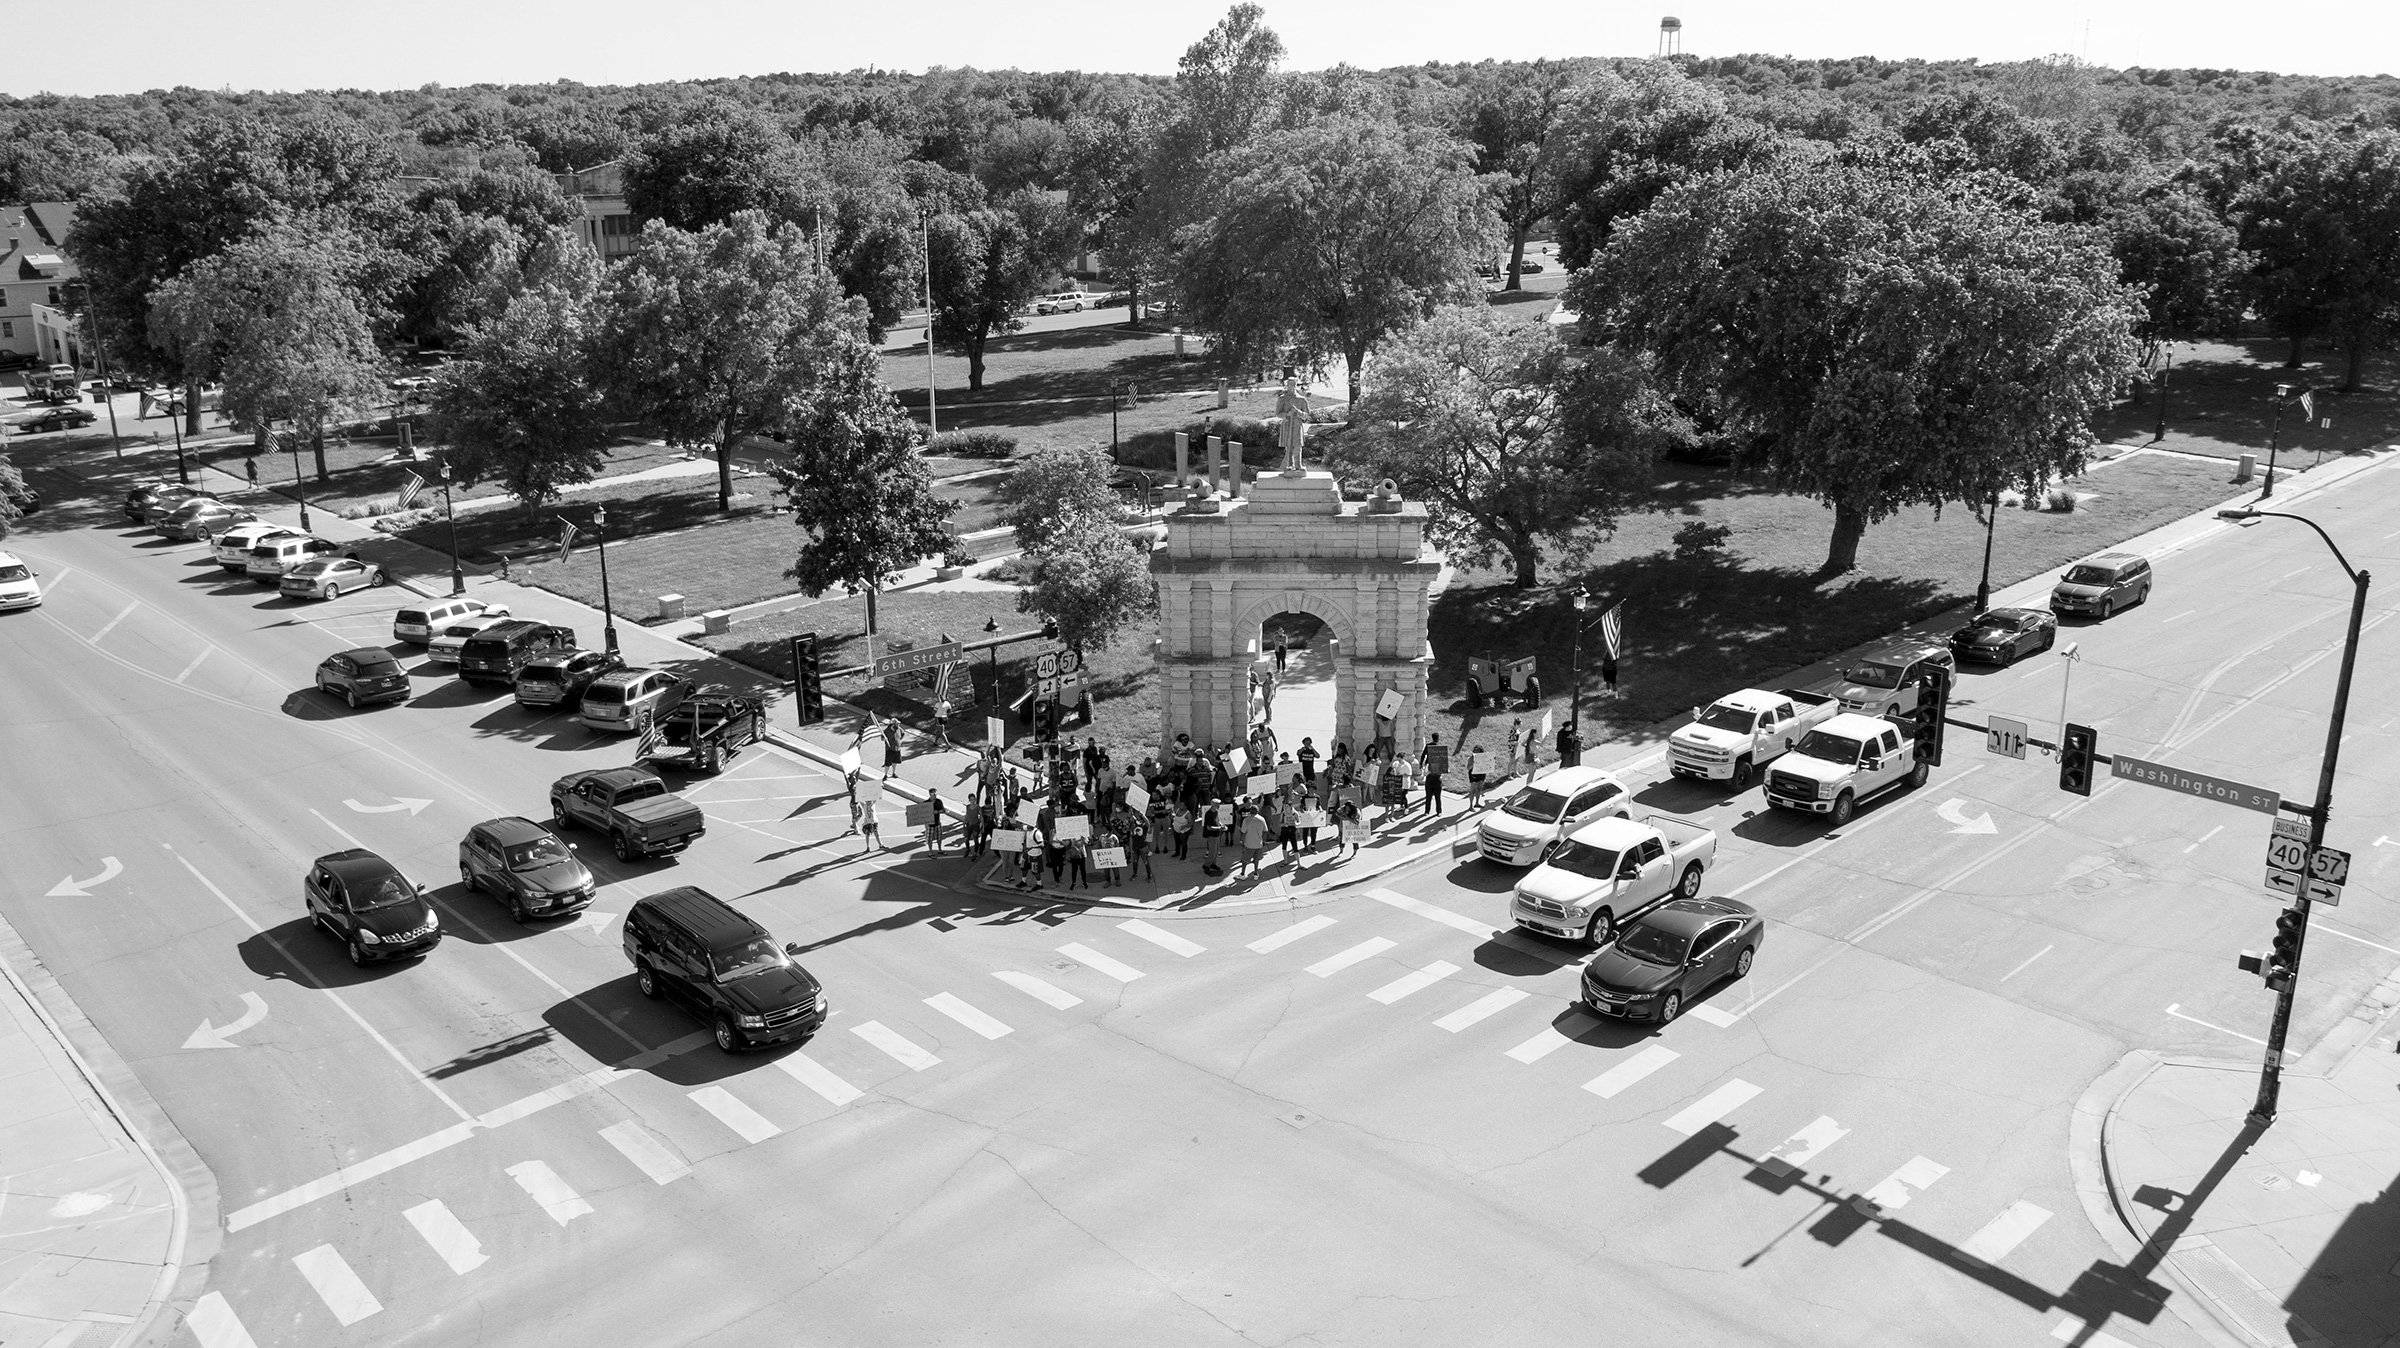 A Protest in response to the killing of George Floyd in Heritage Park, Junction City, Kans., May 29, 2020.